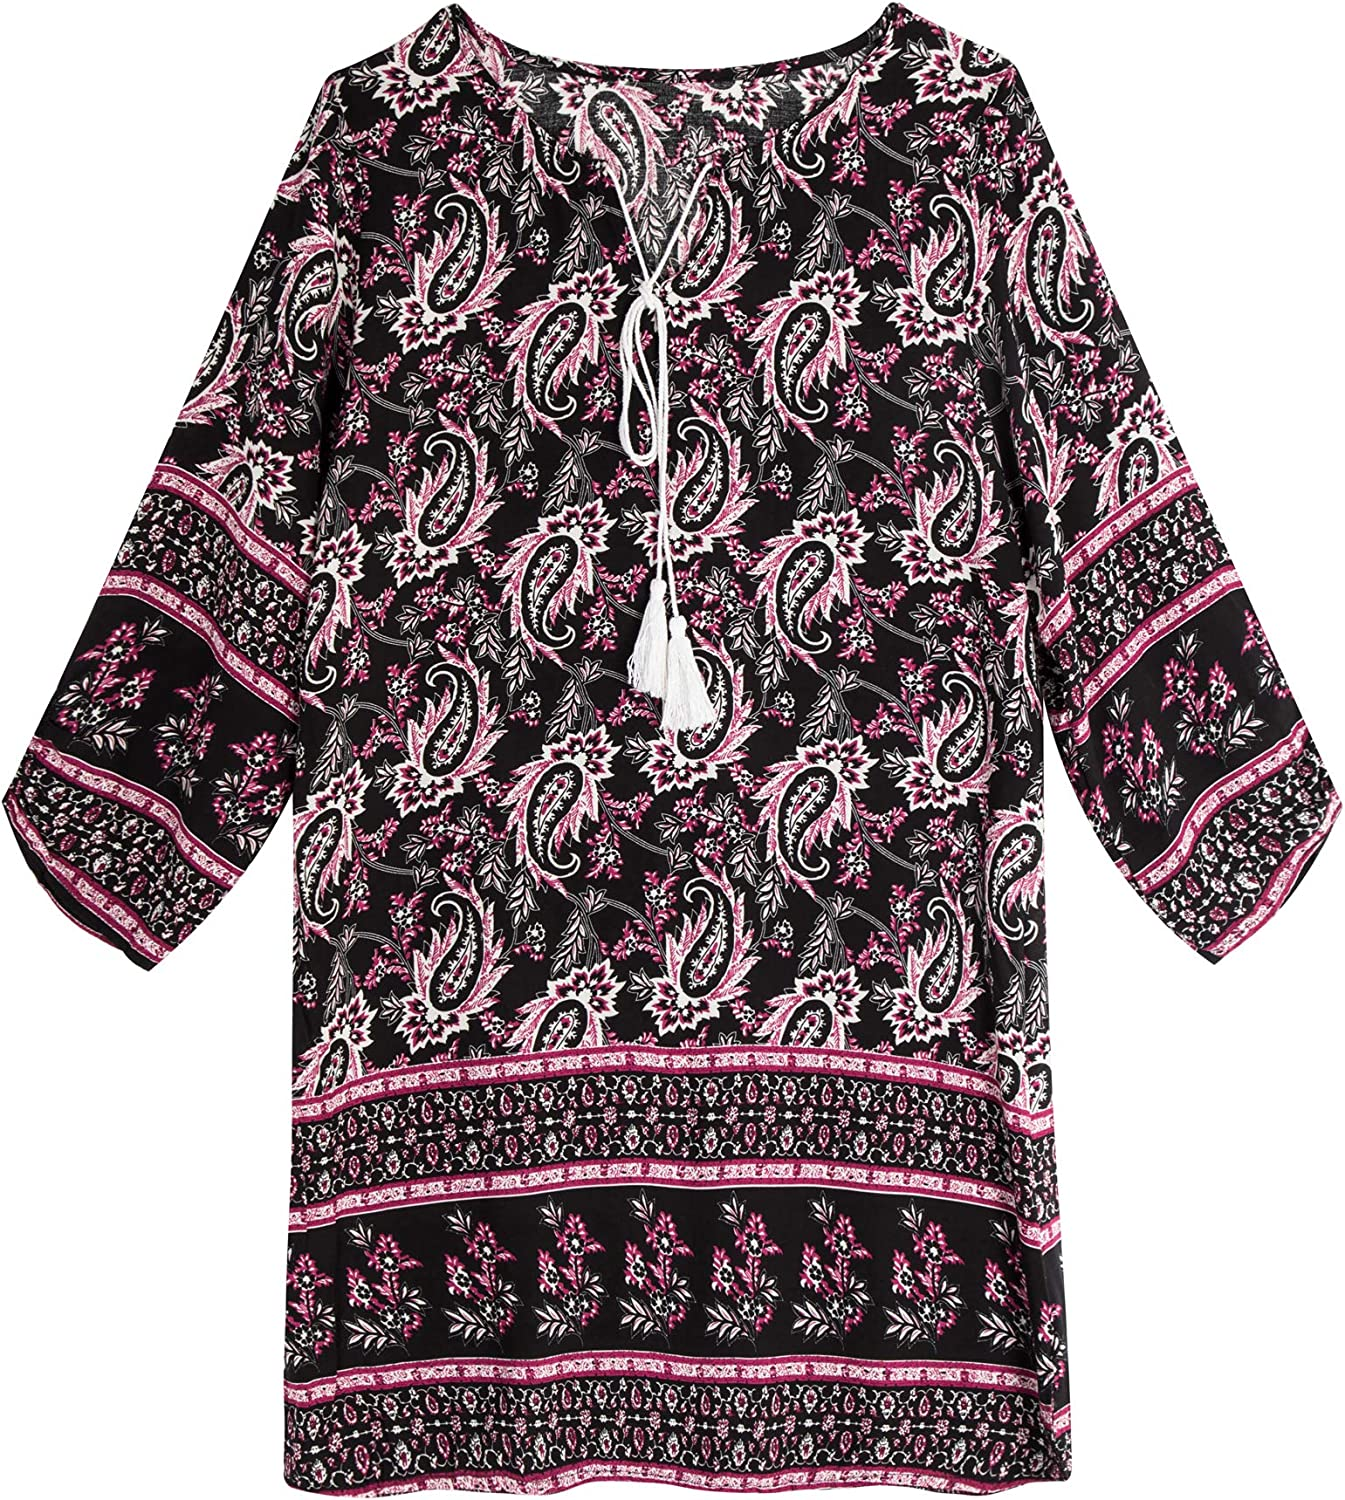 HOLY Women Bohemian Neck Tie Vintage Printed Ethnic Style Summer Shift Dress